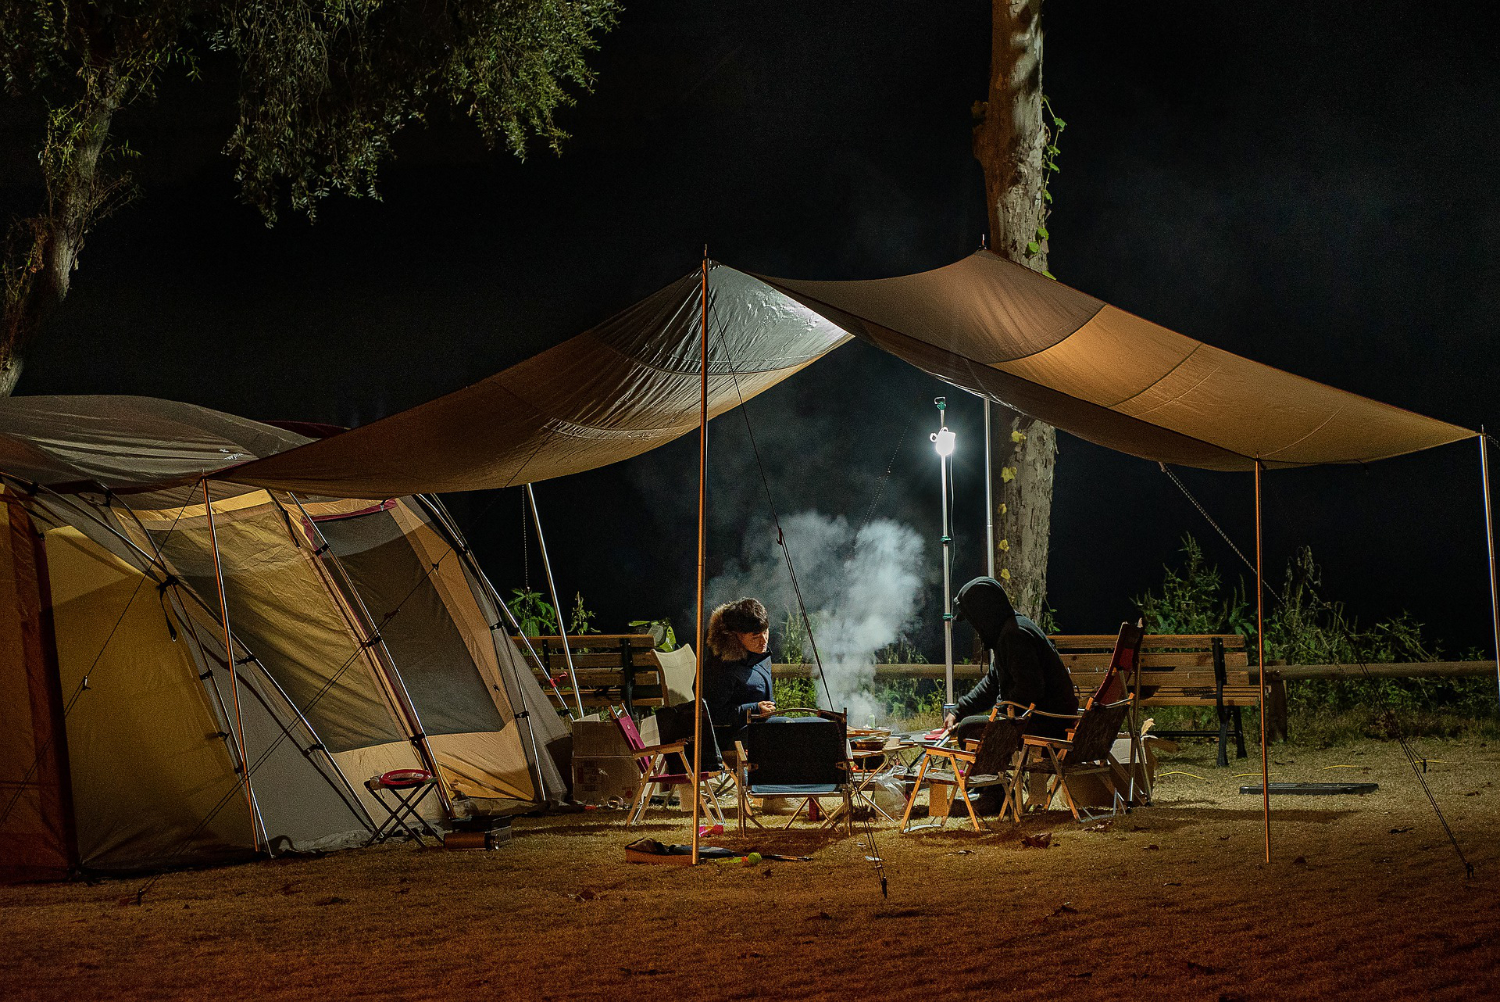 tent camping in cold weather at night